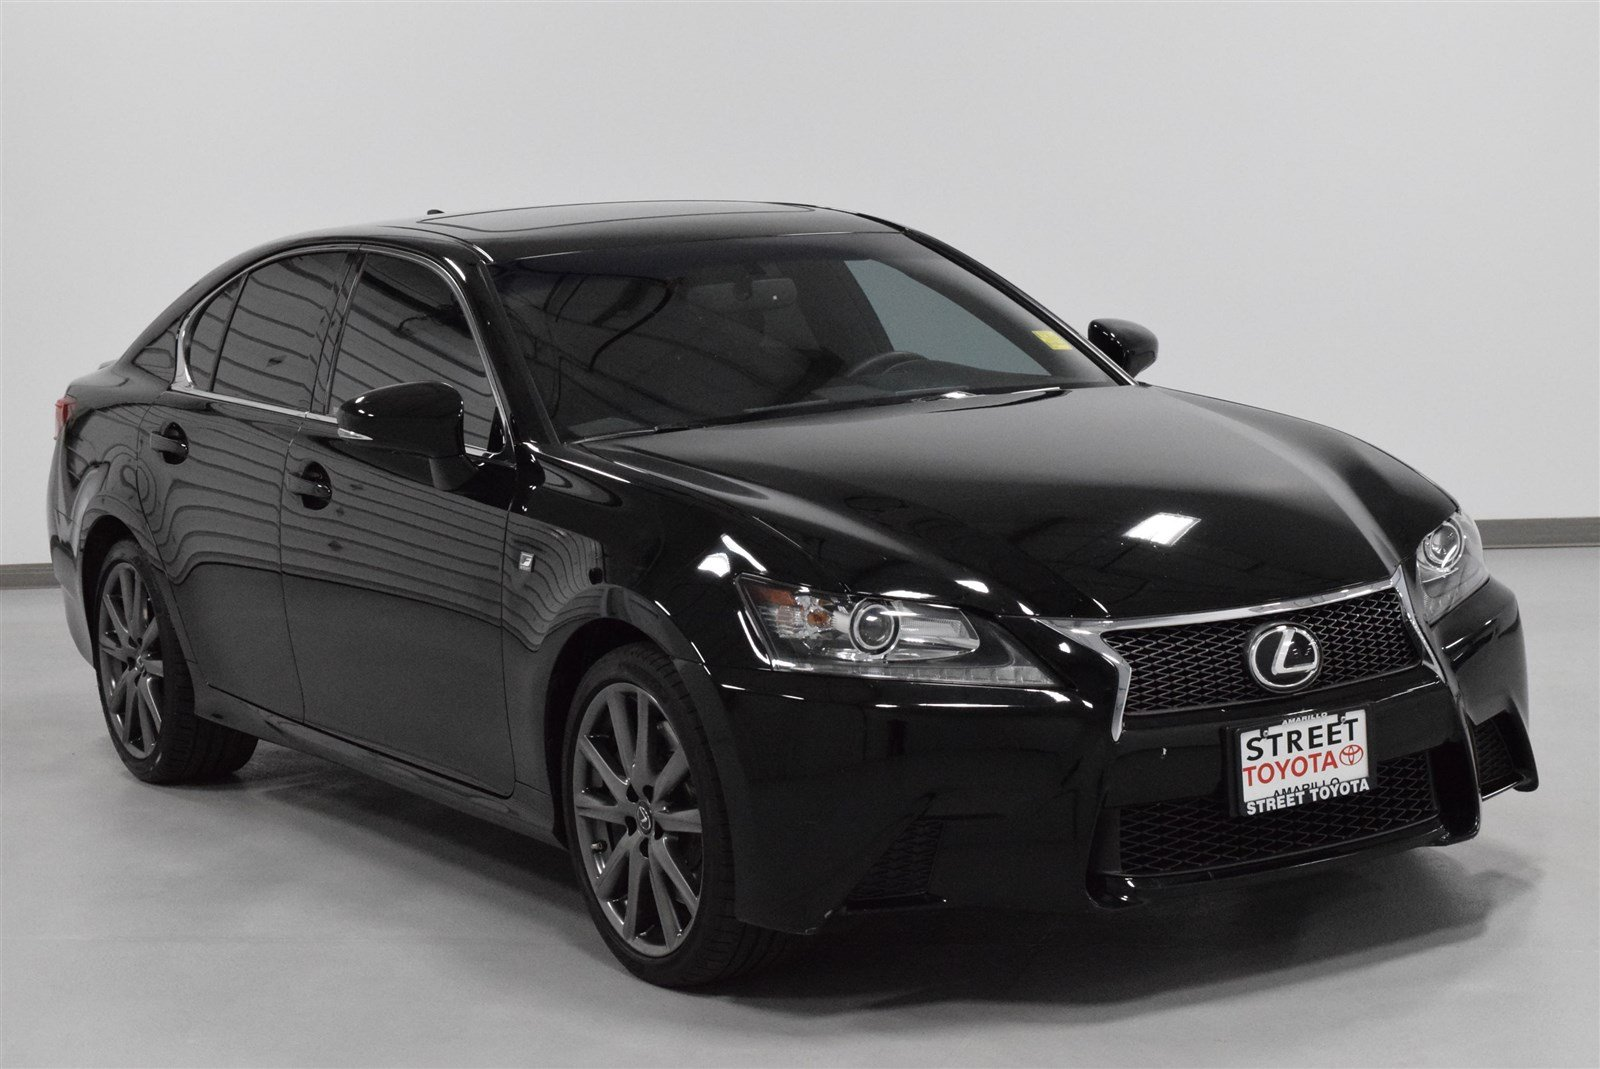 gs car aces white in dsc com over beach style daily line pebble revs crafted bright lexus mood